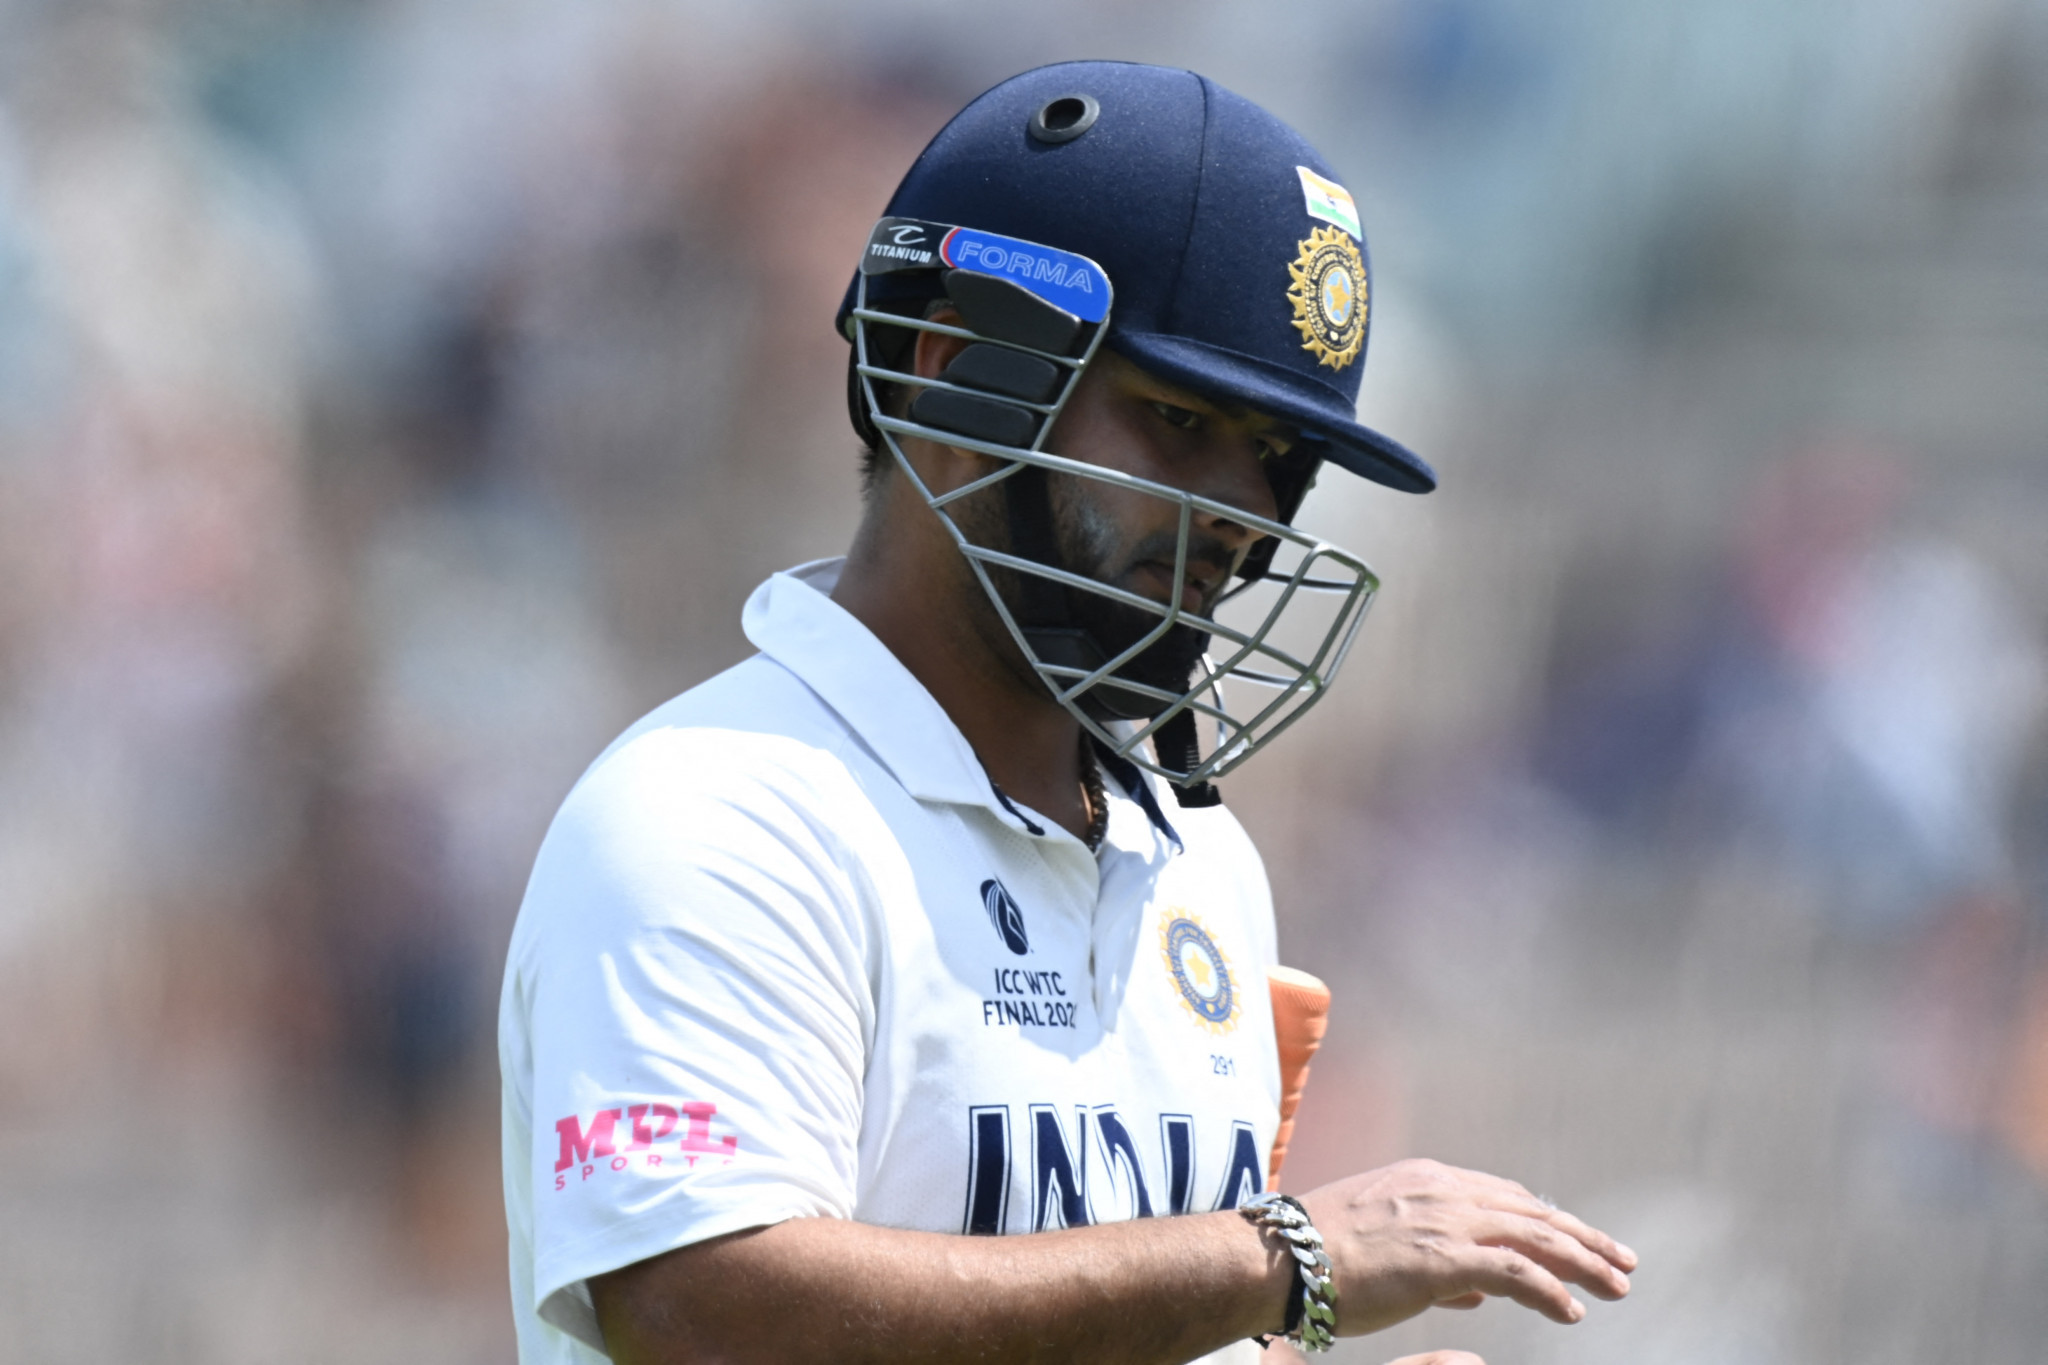 Indian cricket team hit by COVID-19 positives before series with England